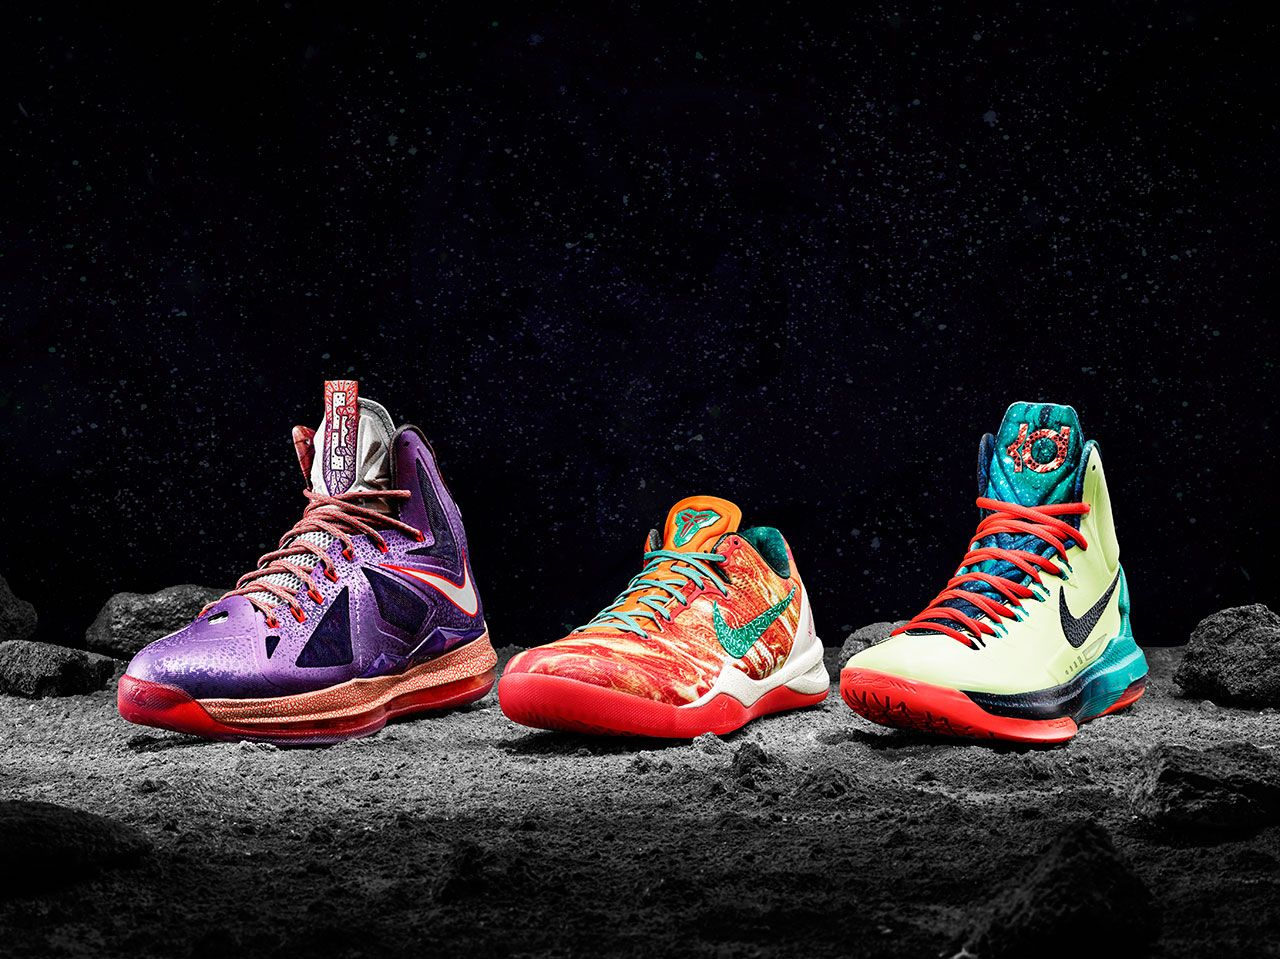 NBA all-stars LeBron James, Kobe Bryant and Kevin Durant received ...